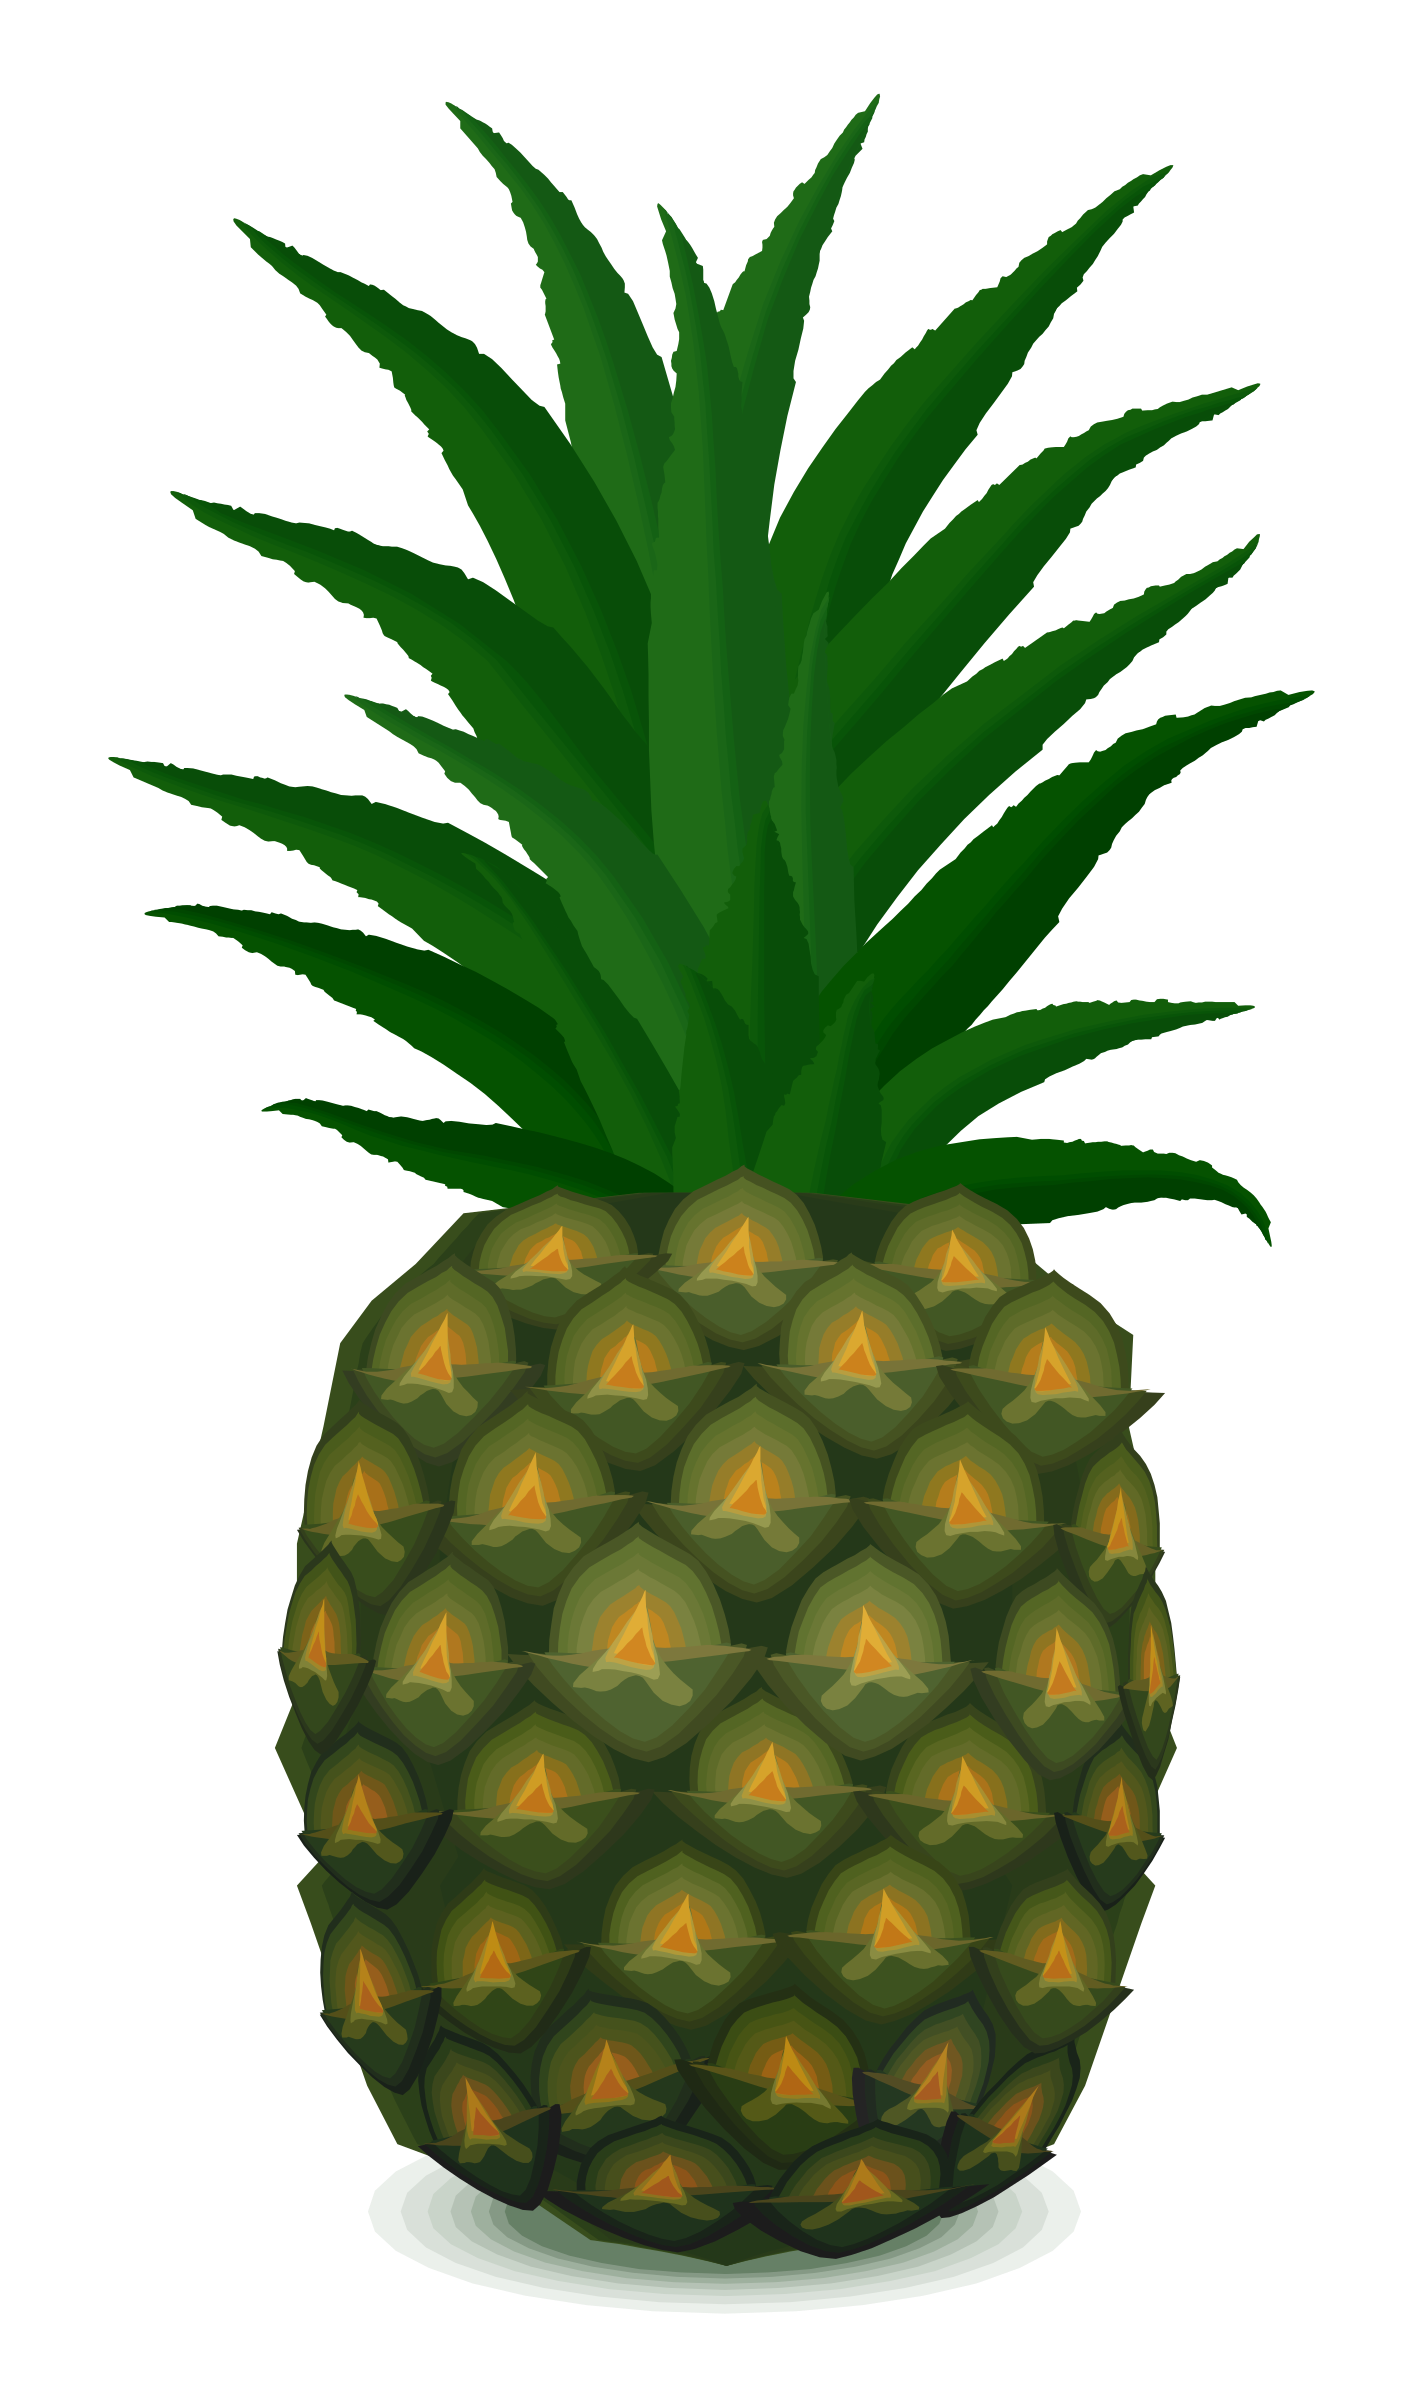 pineapple by cactus cowboy, silhouette, on openclipart